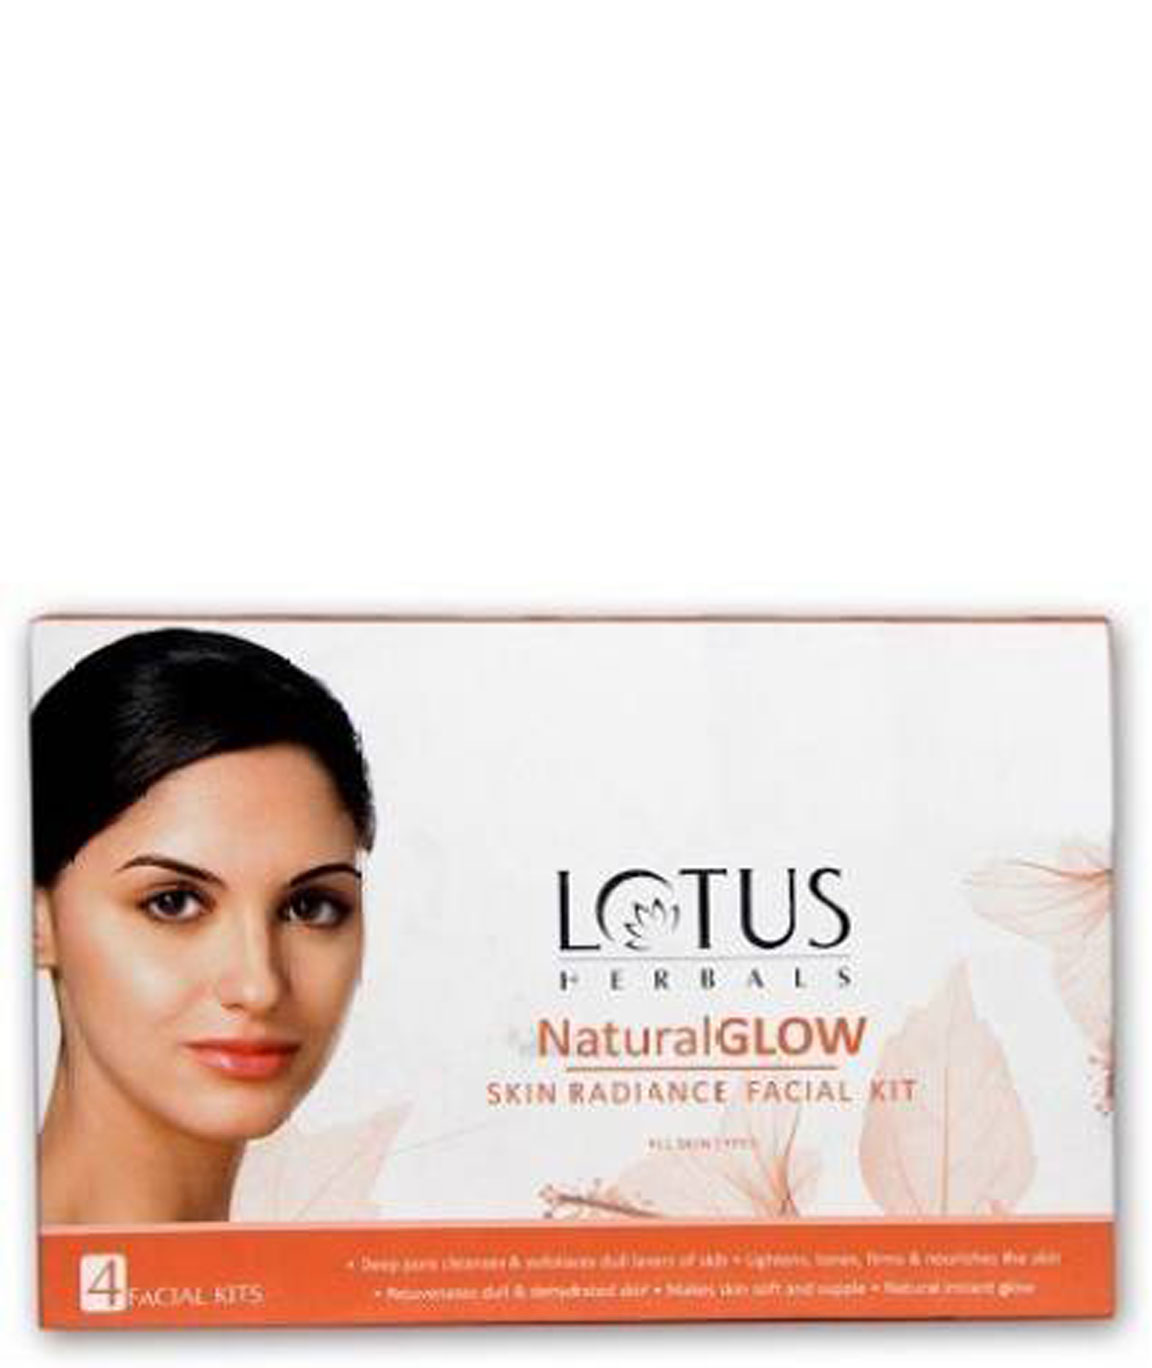 Lotus Herbals Natural Glow Kit Skin Radiance 4 Facial Kit